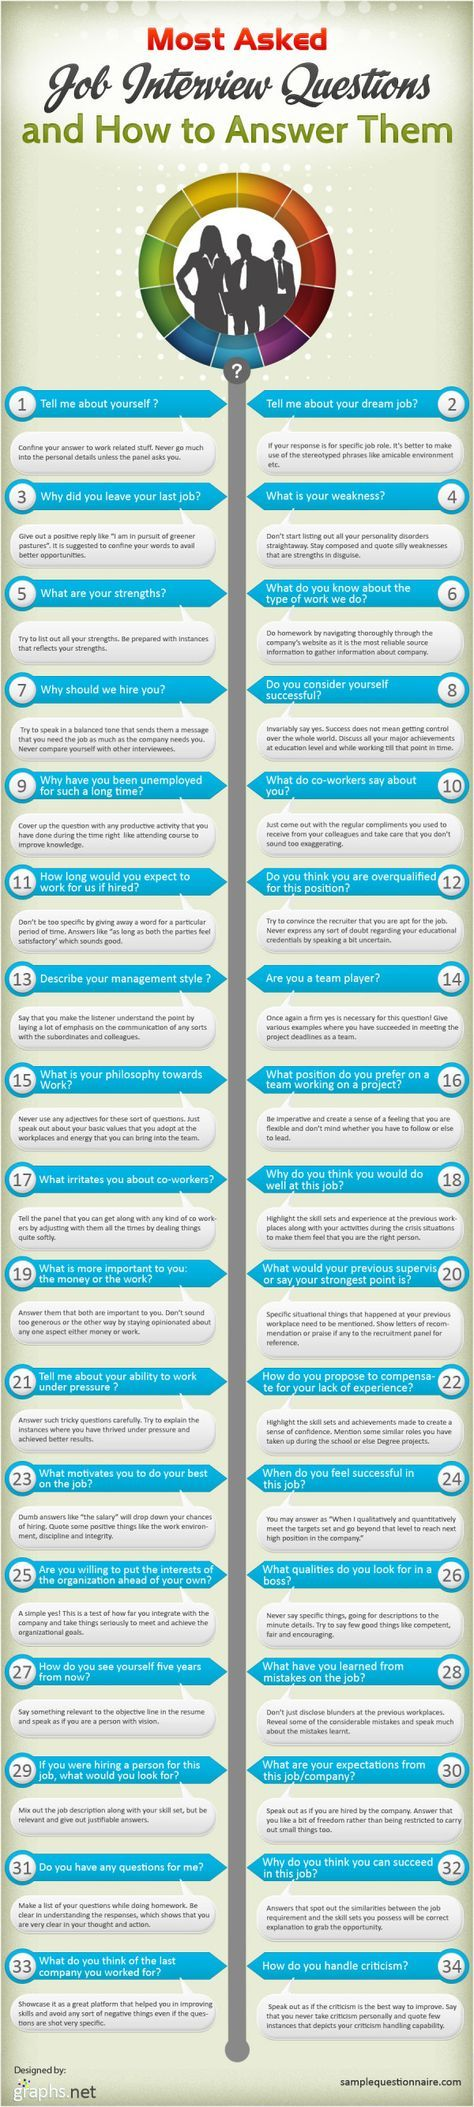 34 Most Asked Job Interview Questions & How To Answer Them..